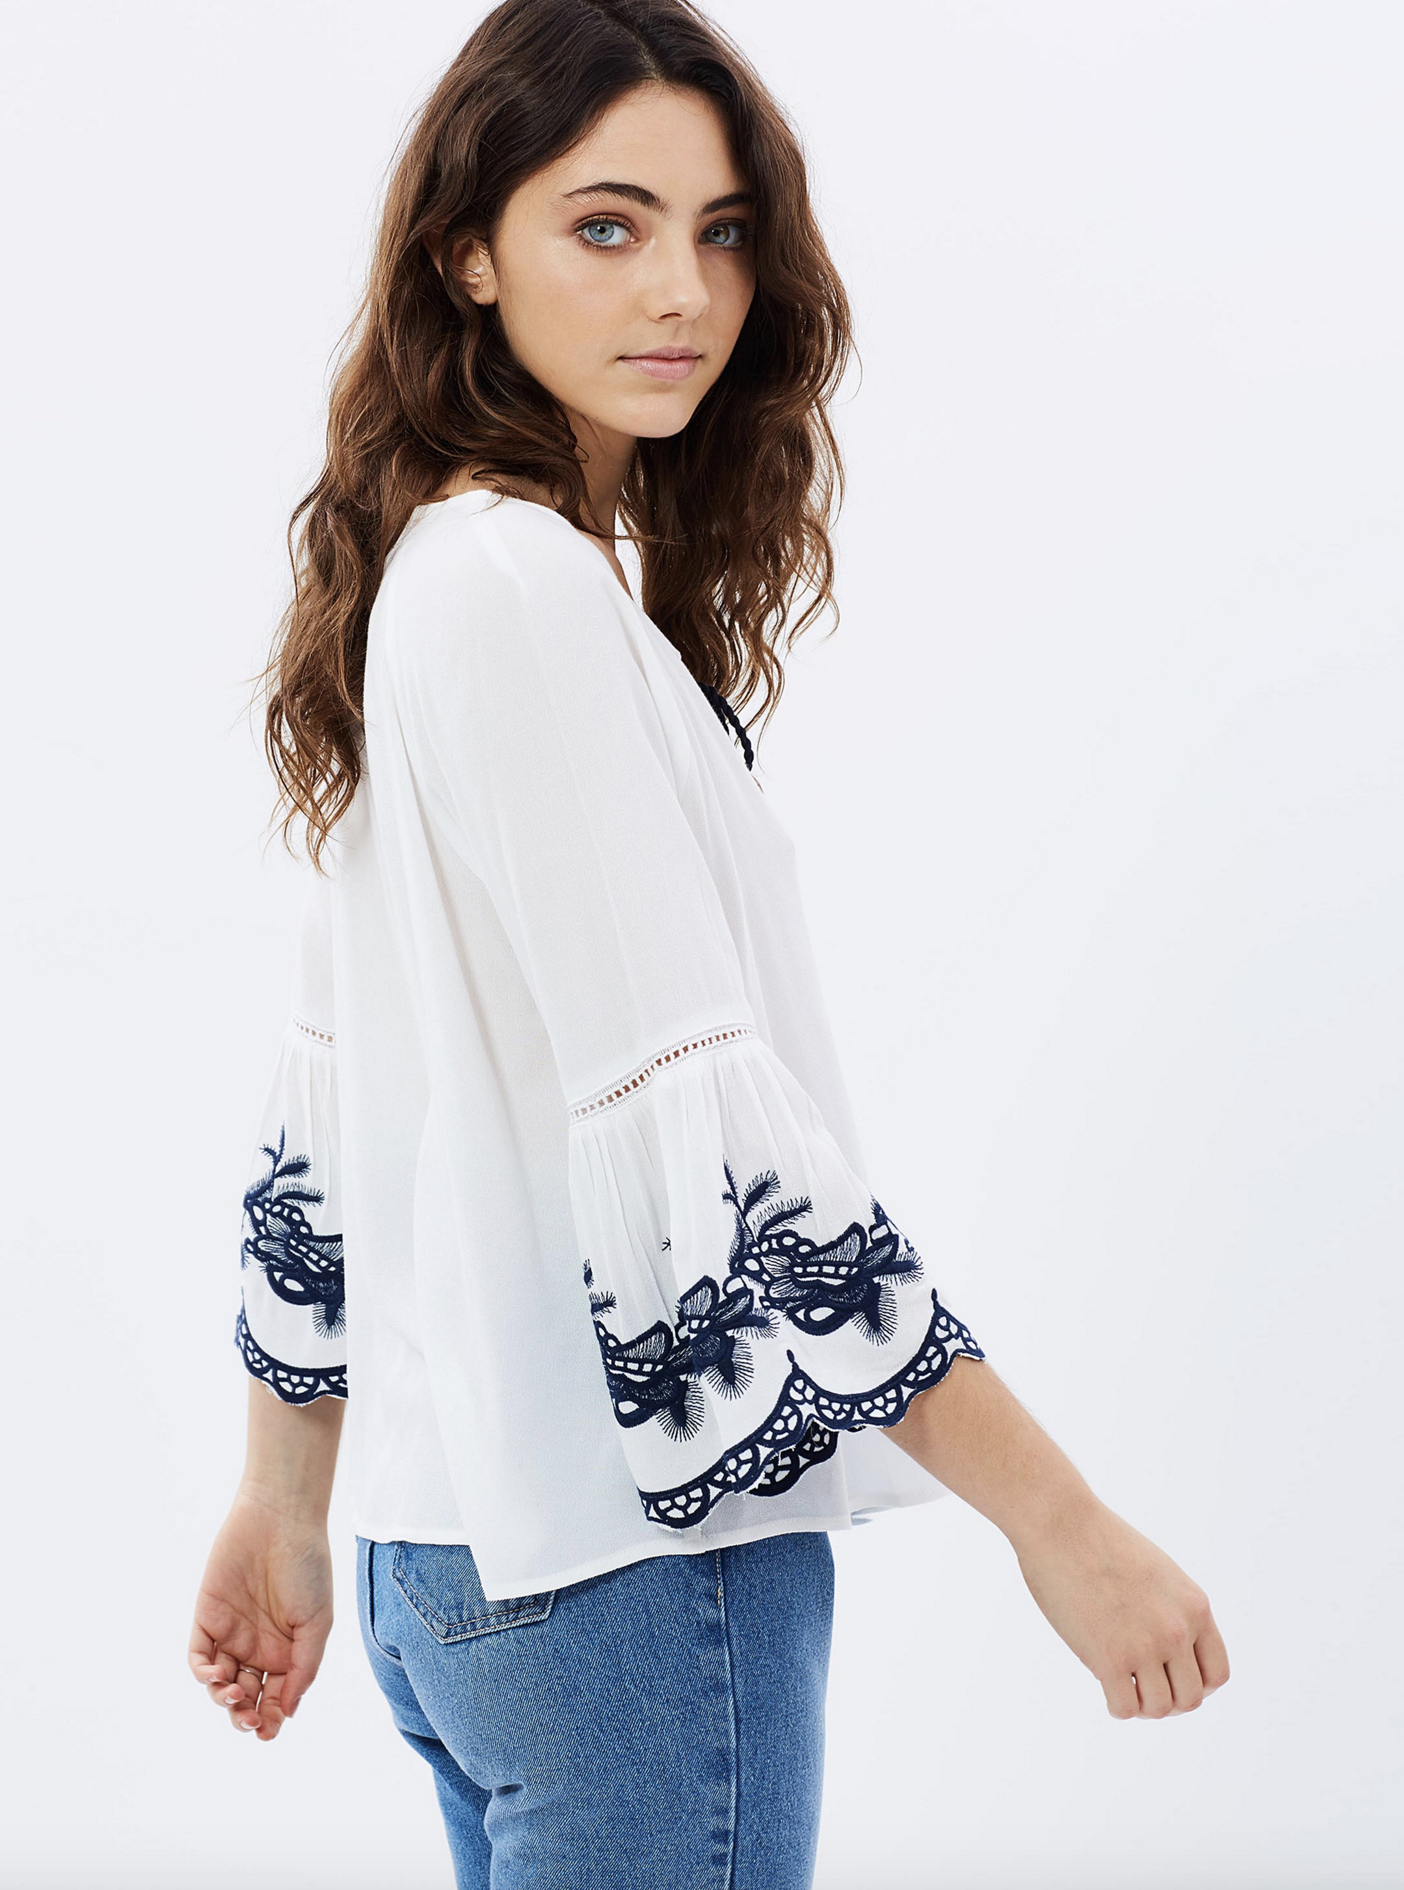 Atmos & Here Giselle gypsy blouse $59.95